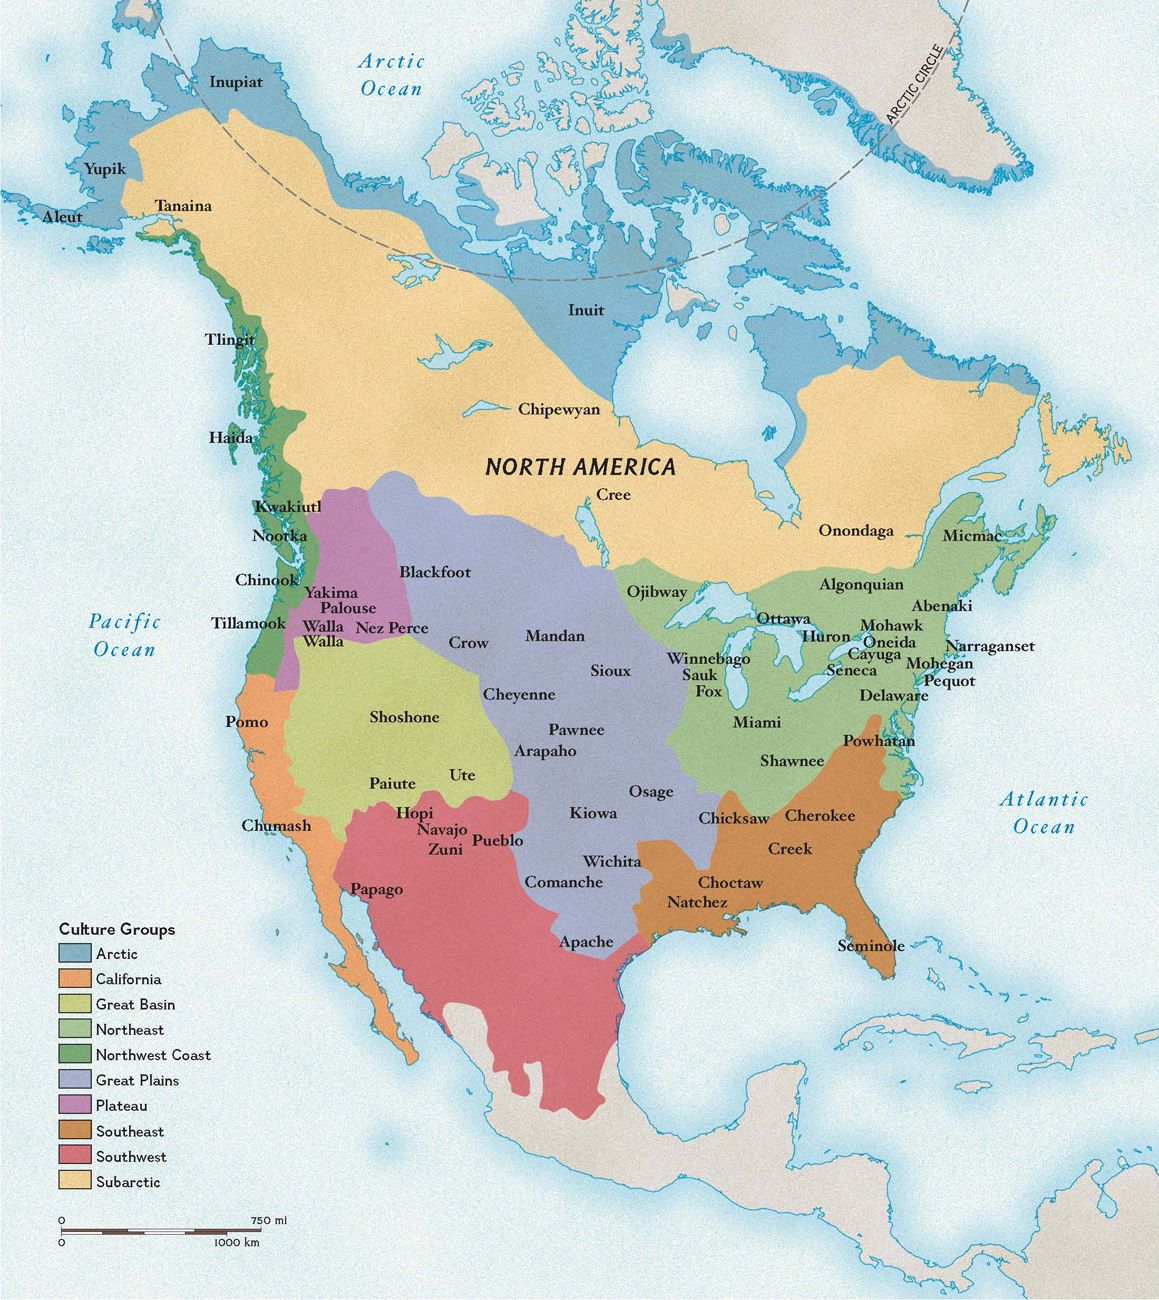 Pin by Wendy Sammons on Social Studies | Native american map, Native ...